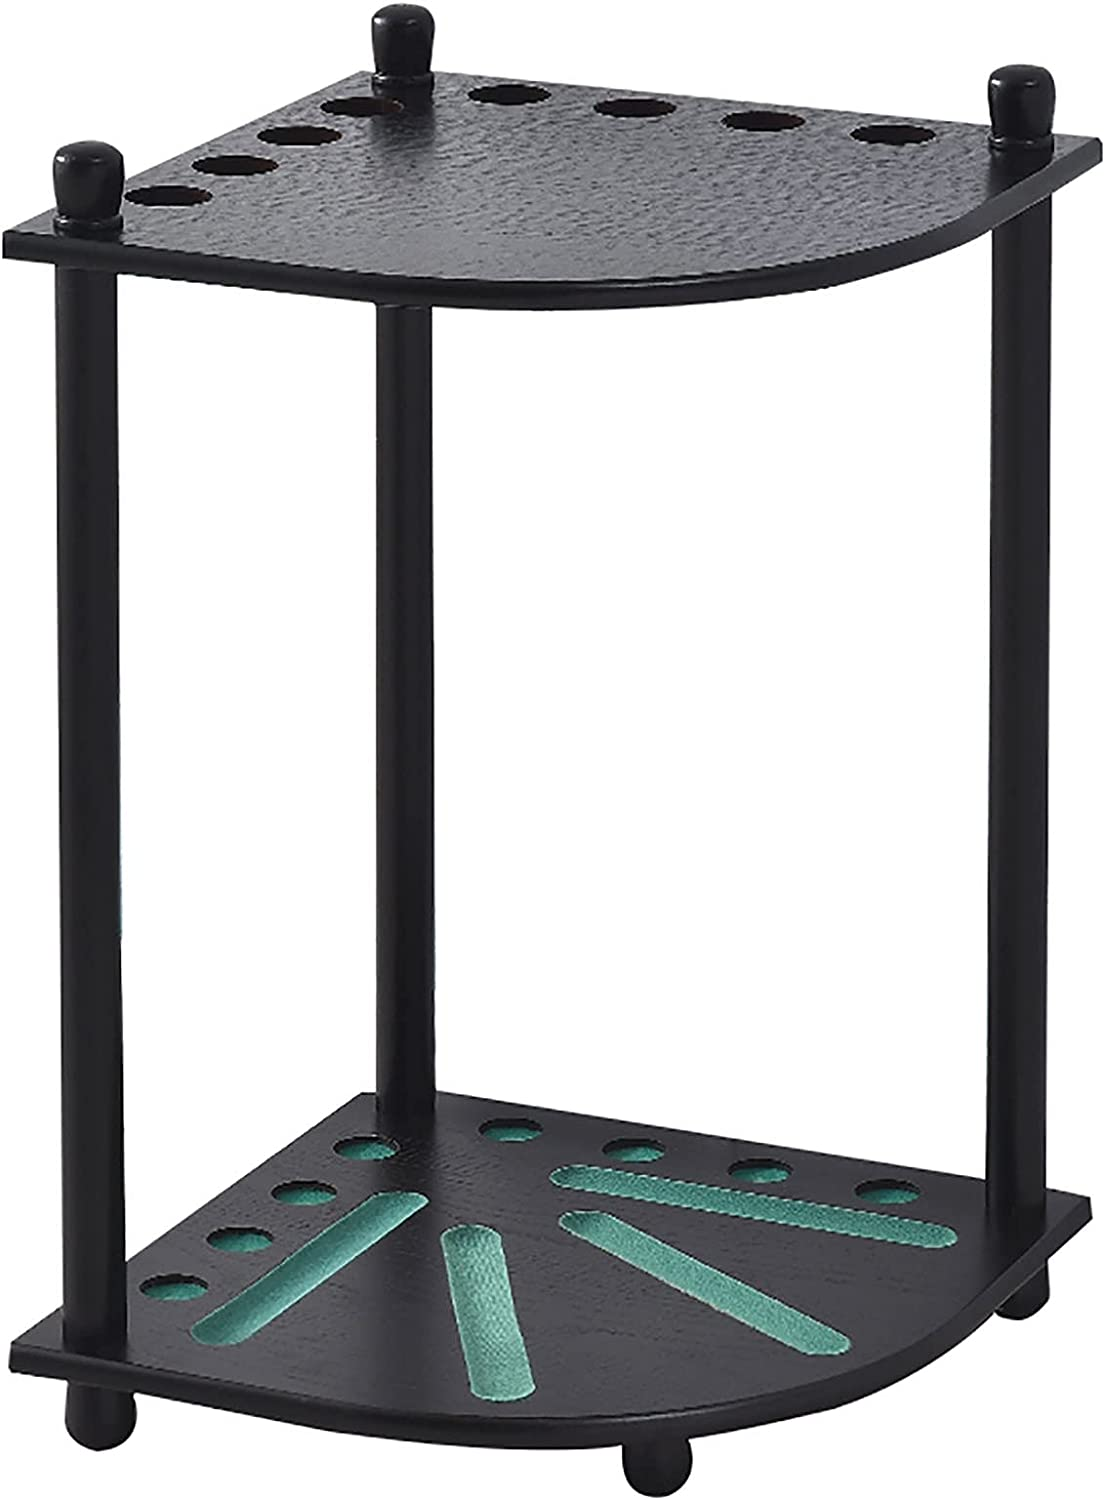 YSML 8-Hole Pool Cue Rack Inexpensive Deluxe Attention brand Stand Floor Billiard Corner St